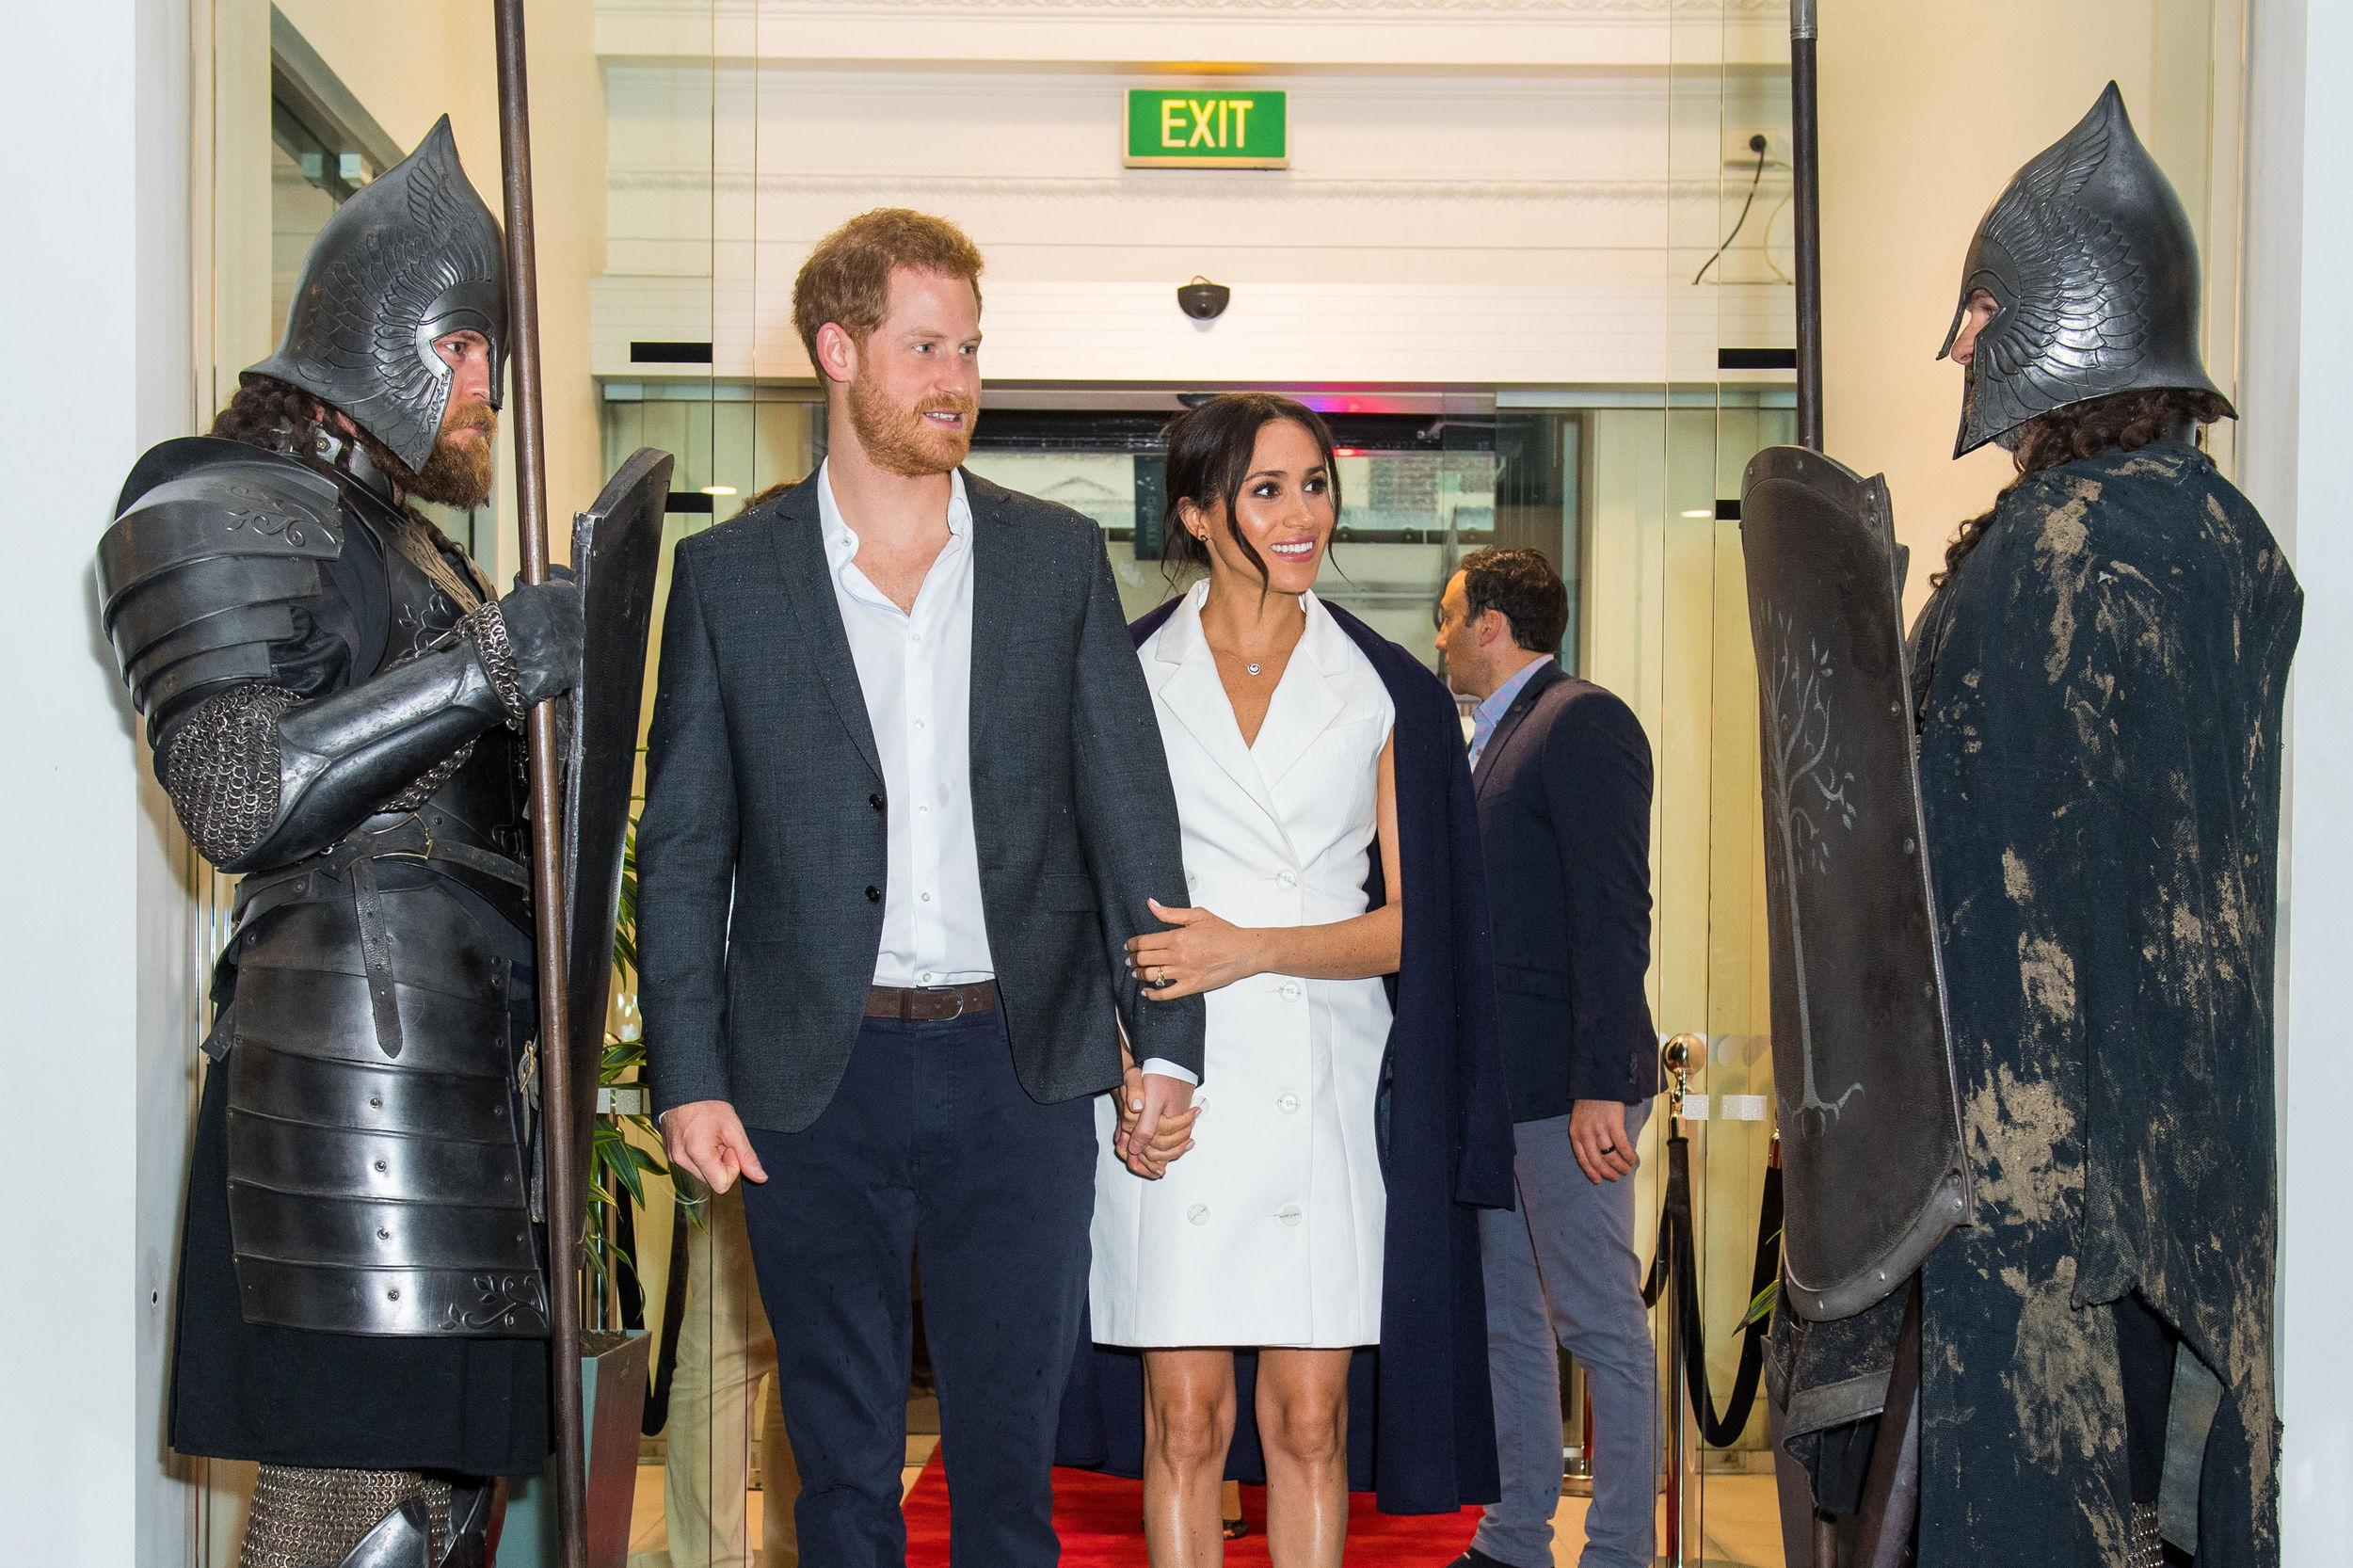 The Duke and Duchess of Sussex are greeted by actors in costume as they arrive for a visit to Courtenay Creative, in Wellington, on day two of the royal couple's tour of New Zealand.